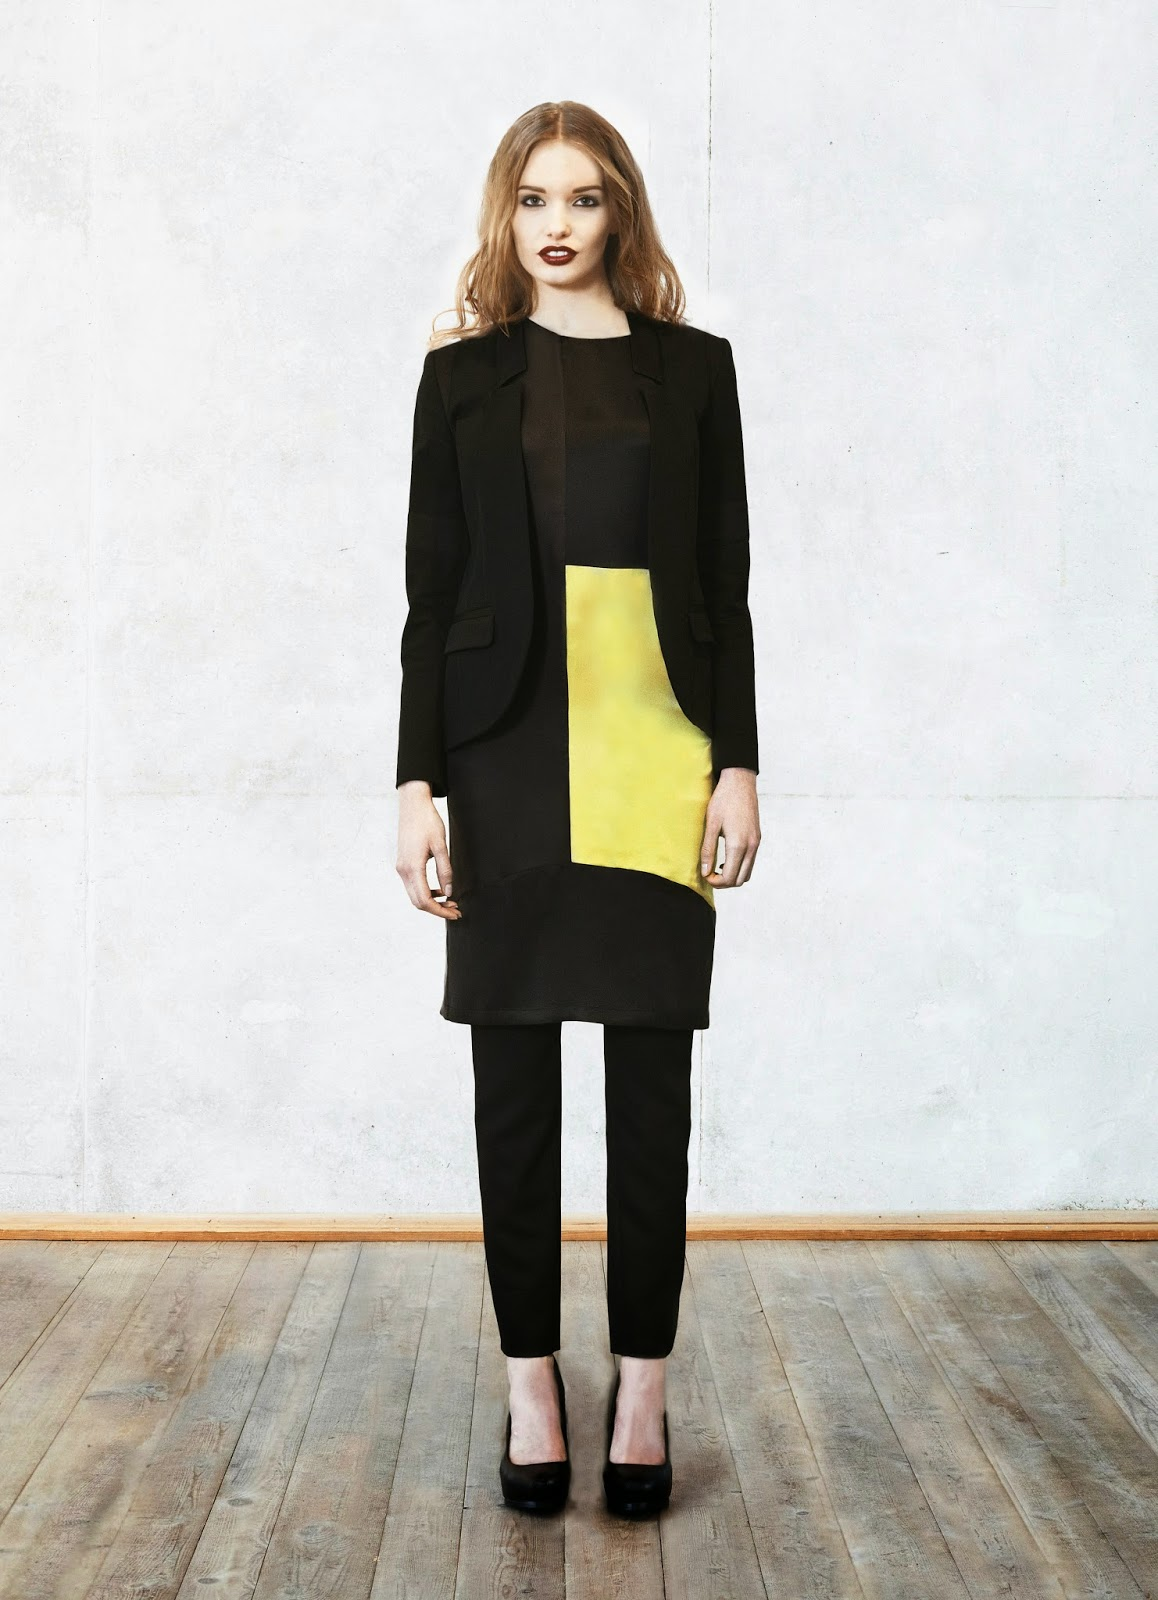 shirt dress, black and yellow shift dress